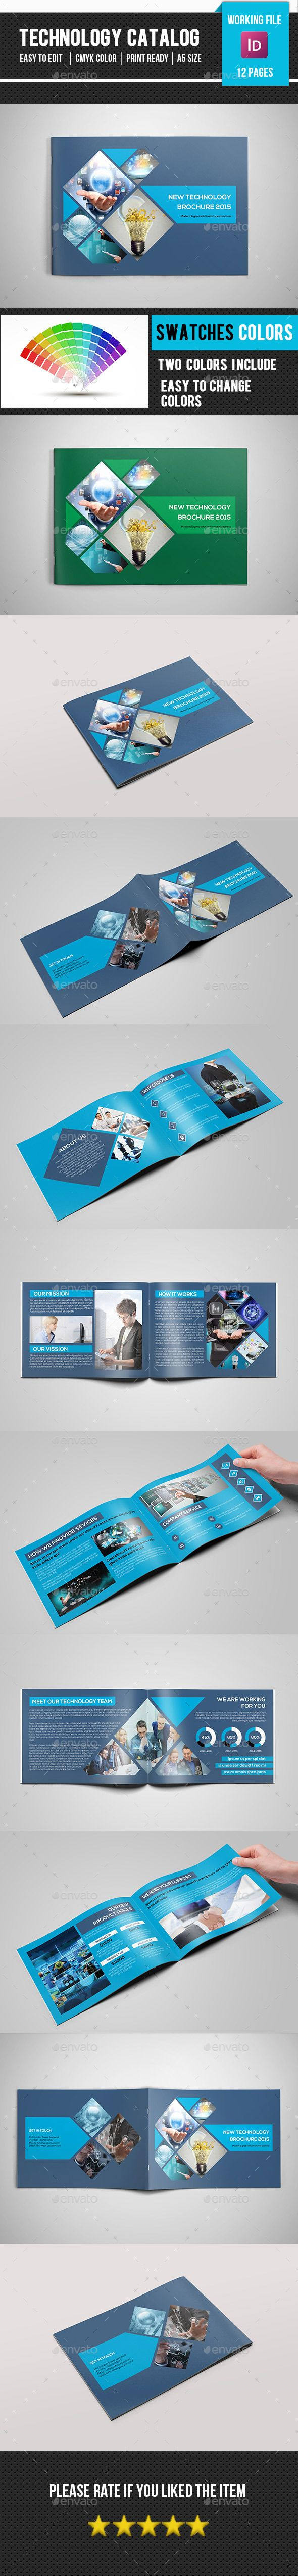 Technology Brochure/Catalog-V180 | Brochures, Corporate Brochure